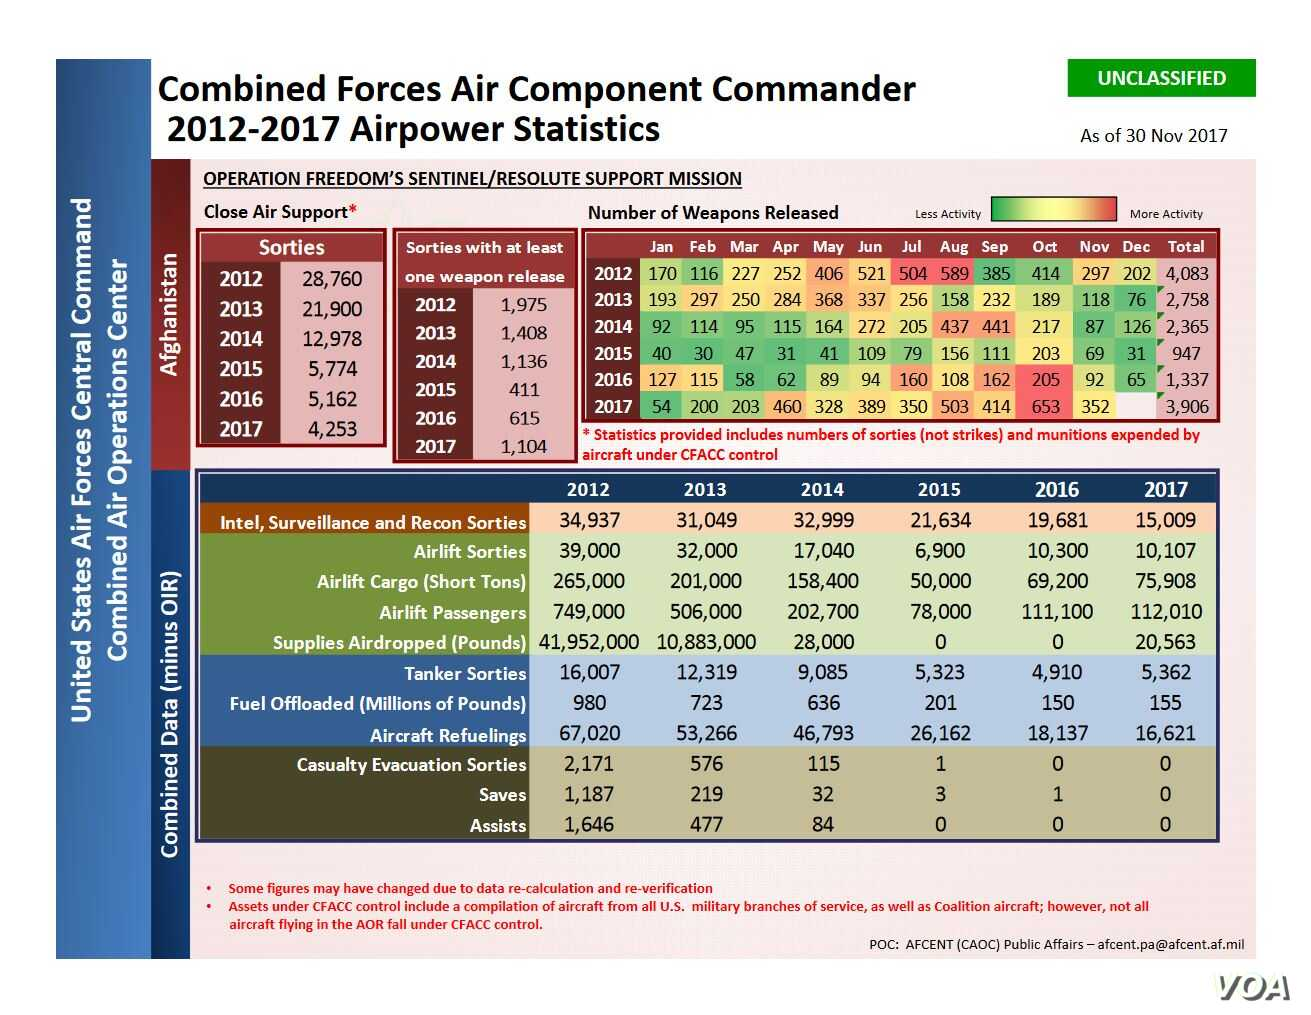 Combined Forces Air Component Commander 2012-2017 Airpower Statistics. (Courtesy: U.S. Air Force Central Command)